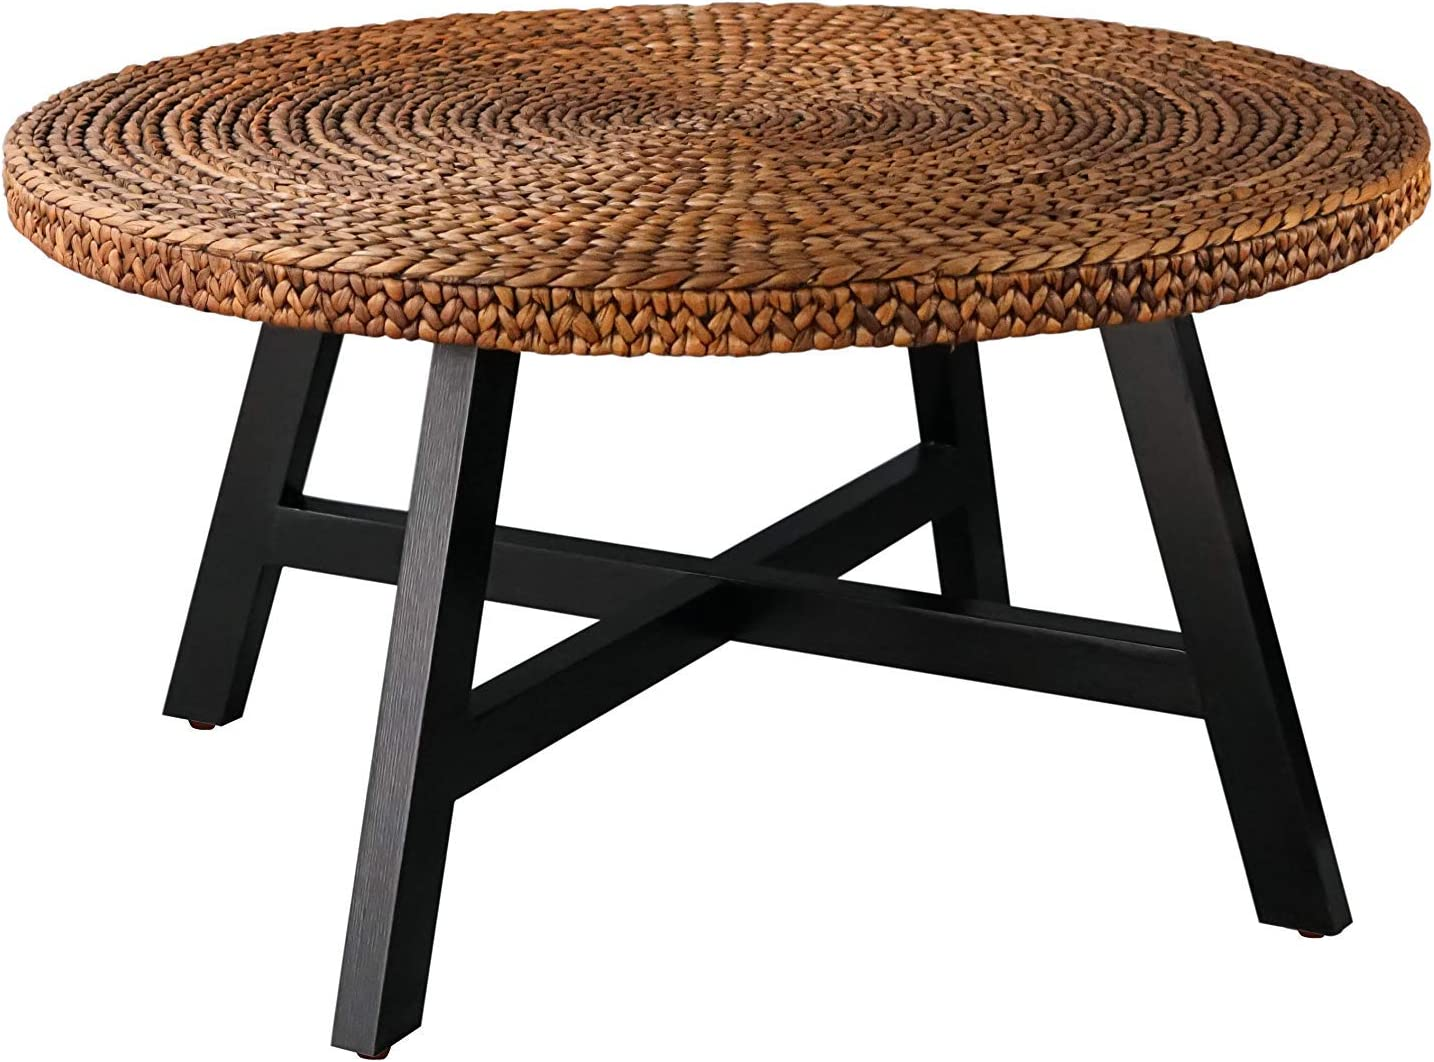 Amazon Com Randefurn Seagrass Round Coffee Table Sofa Console Tables Pine Wood X Base Frame End Tables Easy Assembled Multiple Sizes For Living Room Solid Wood Side Table 32 X 17 Inches Gold Kitchen Dining [ 1068 x 1444 Pixel ]